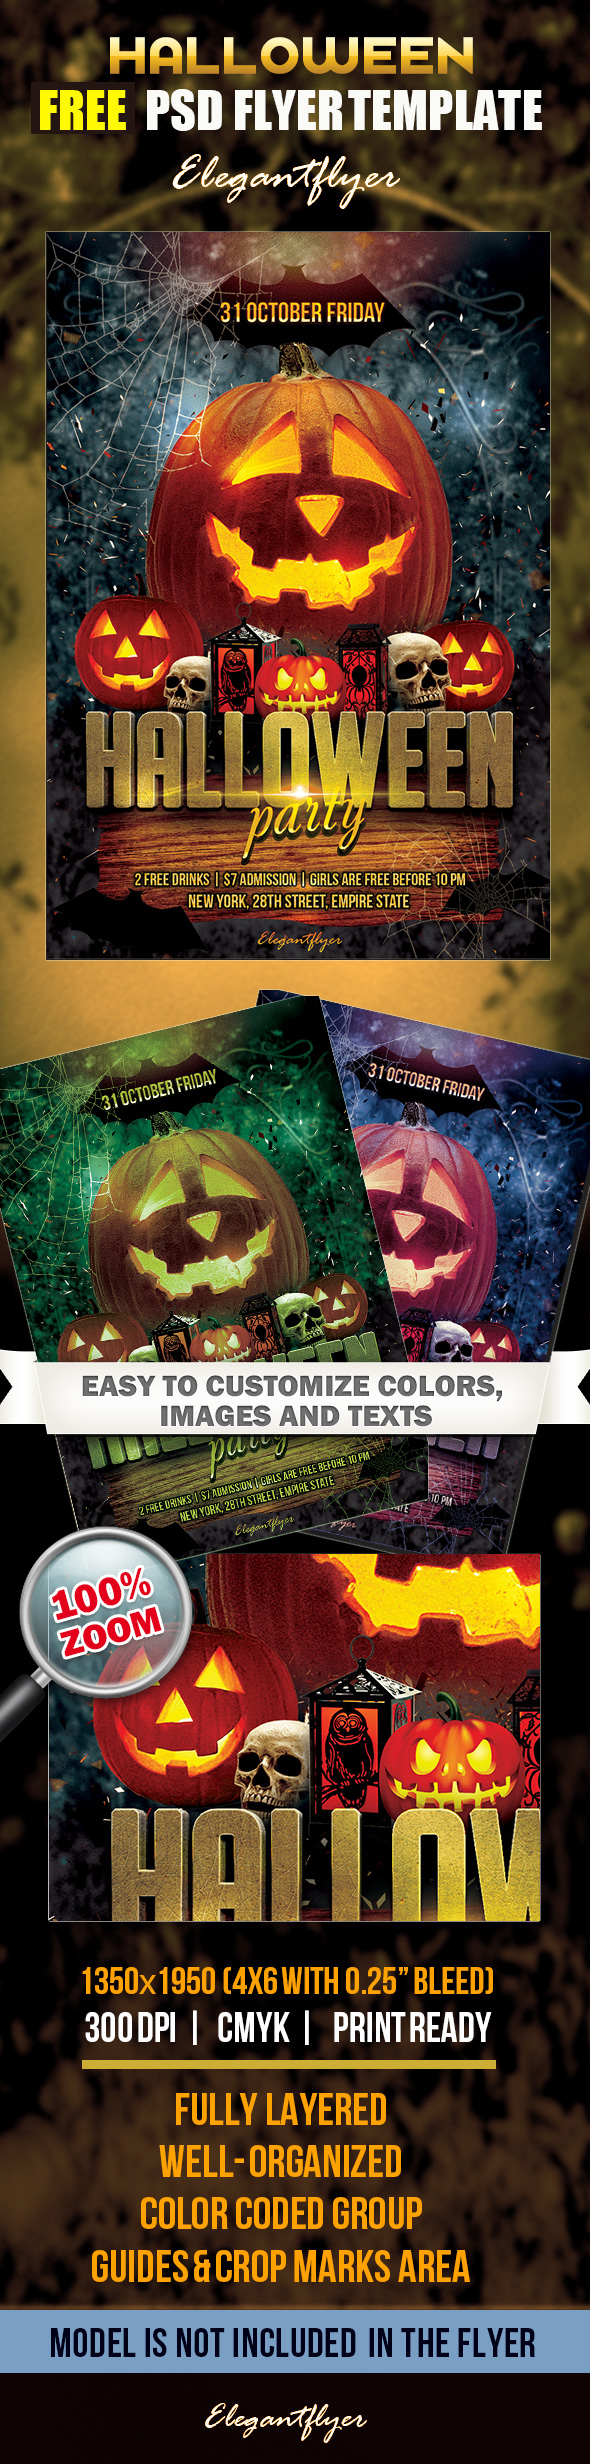 20 free psd halloween flyer templates free psd templates for Free halloween flyer templates